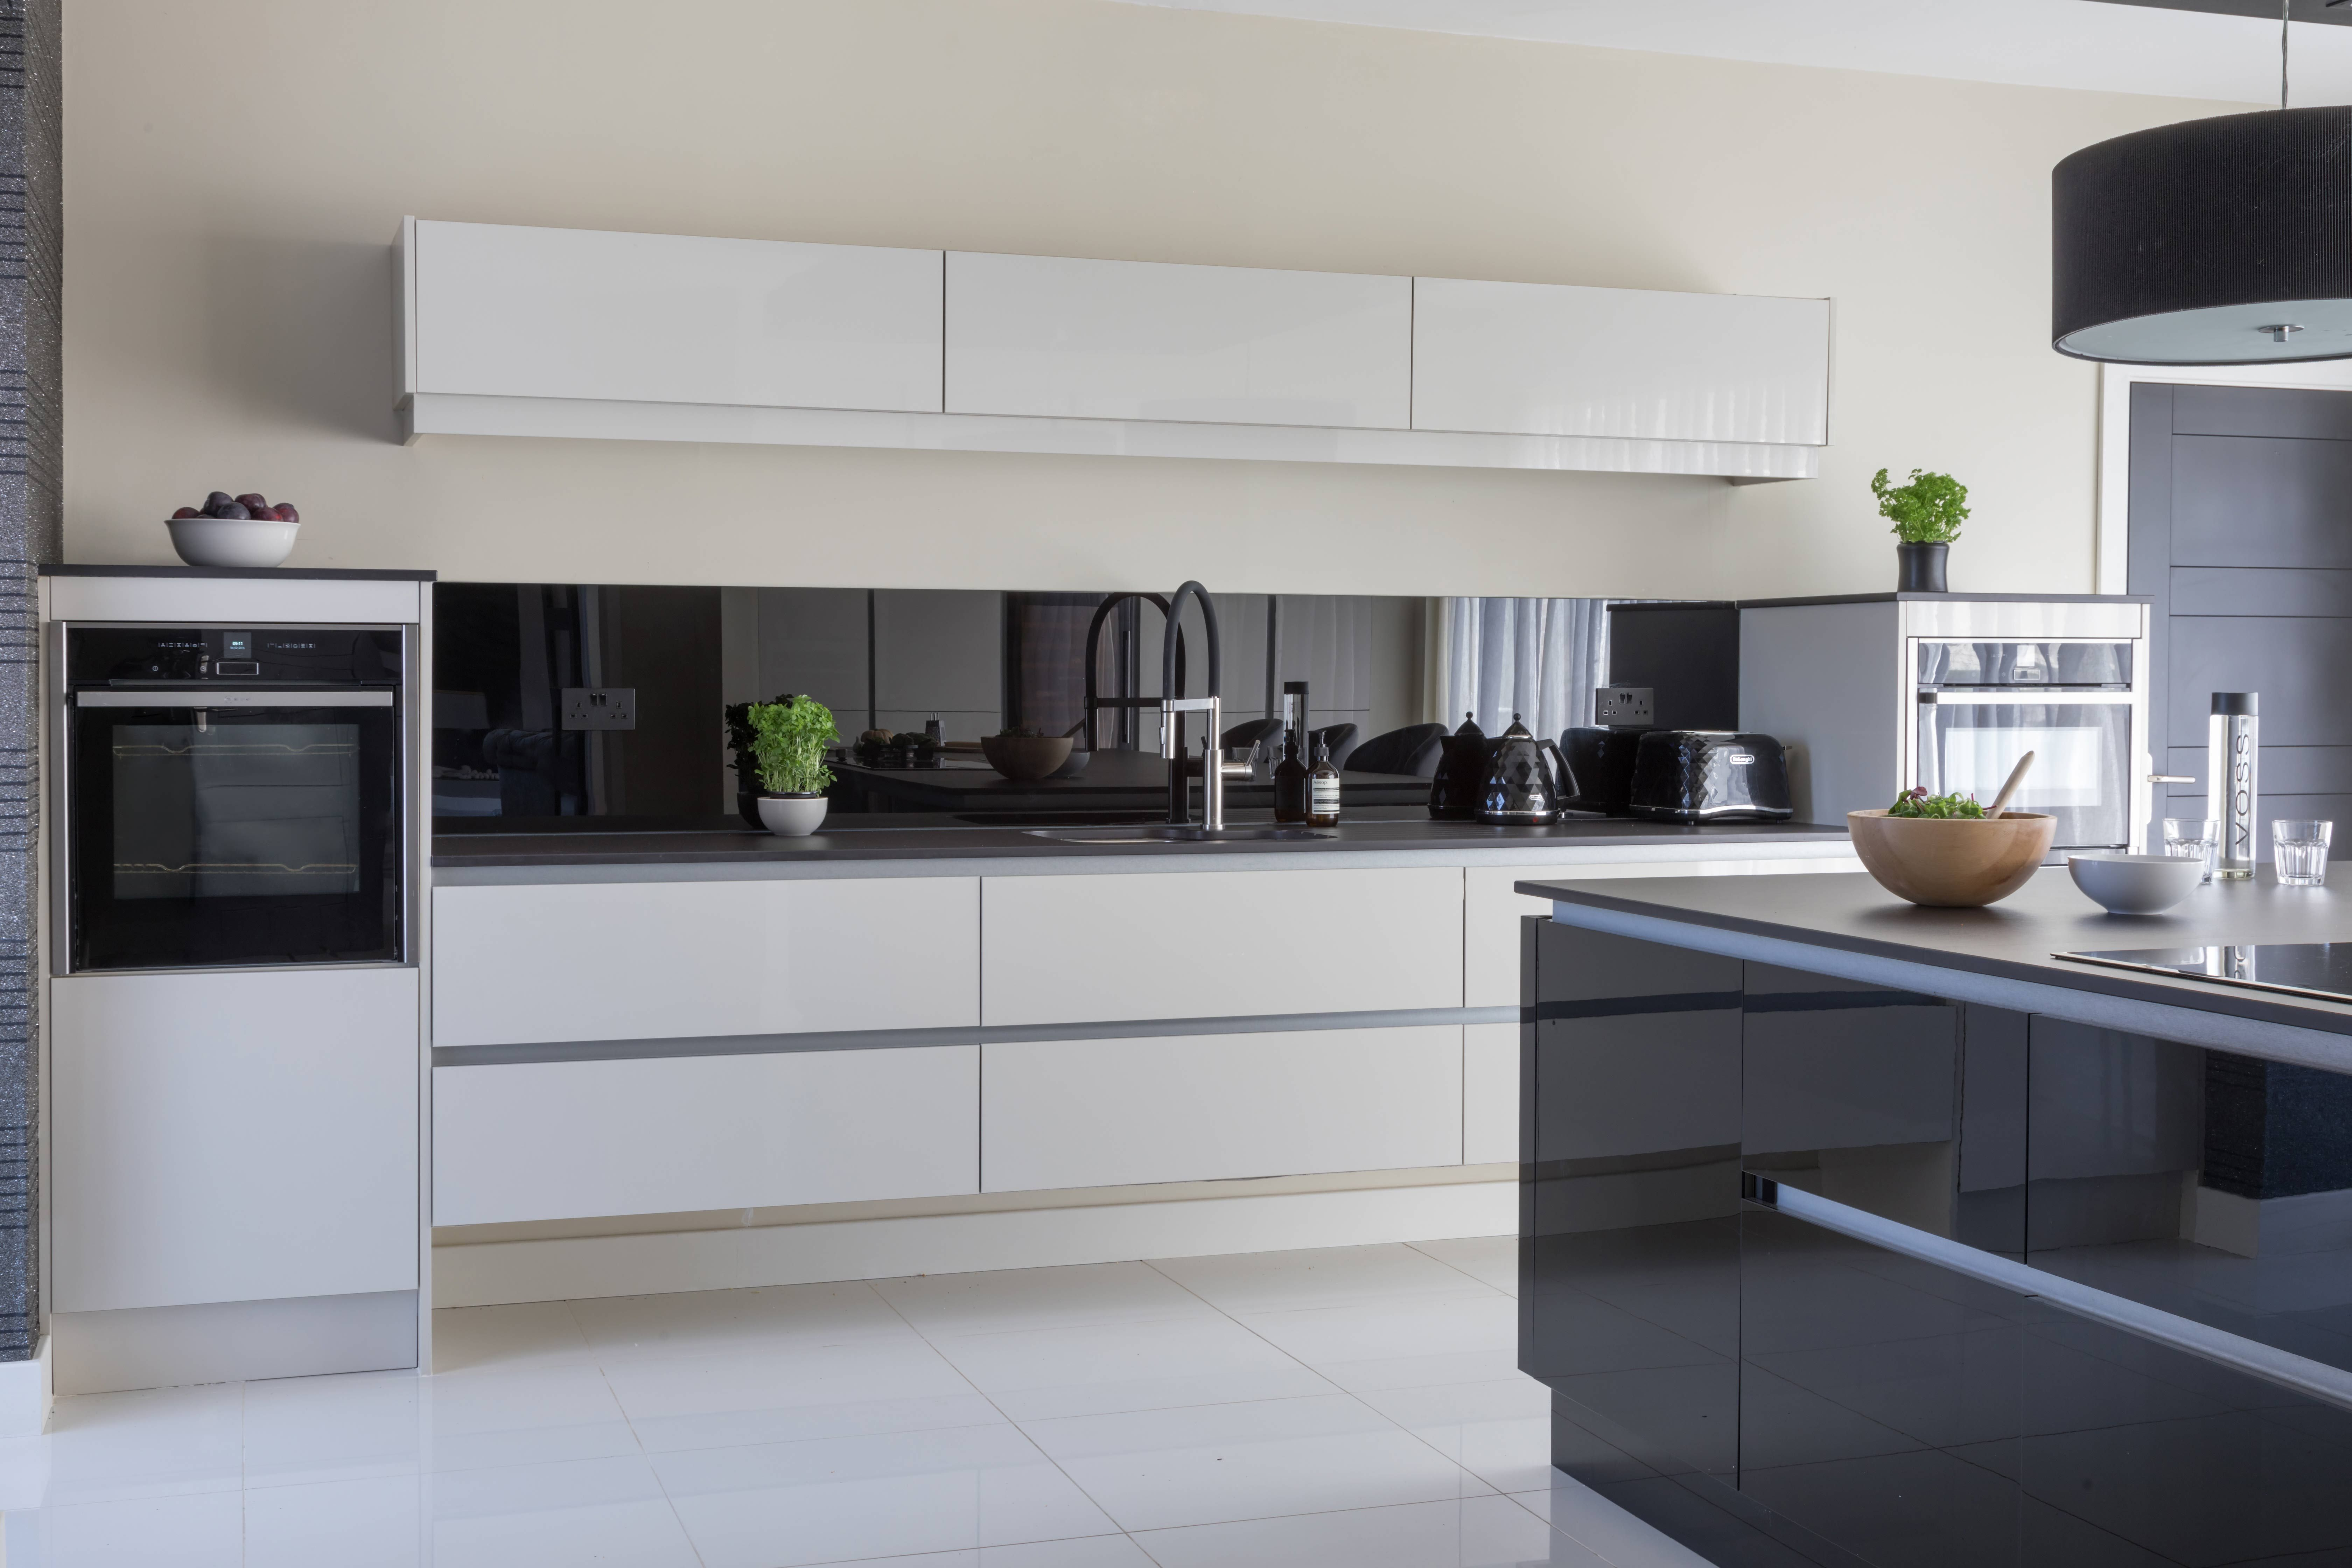 This Is Modern Sleek Kitchen Design The Mixture Of White Black And Dark Grey In A Gloss Finish Adds Sleek Kitchen Design Sleek Kitchen Kitchen Inspirations